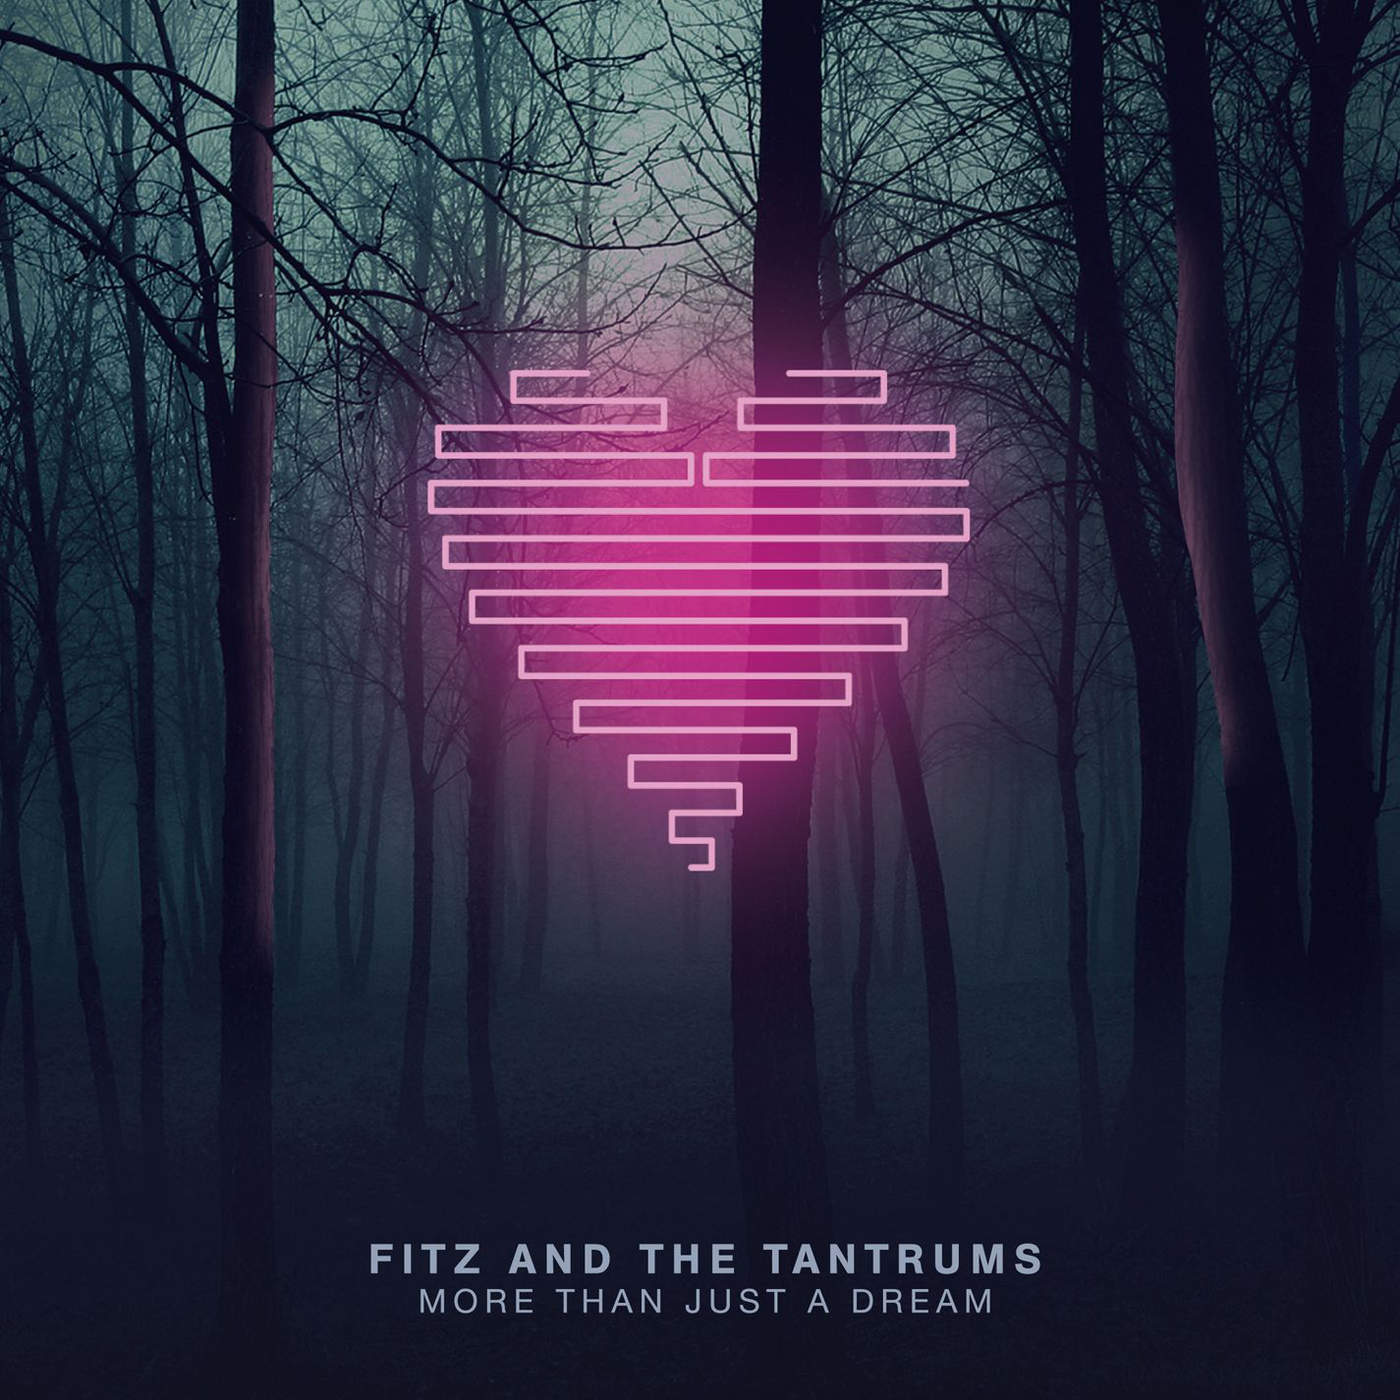 Art for The Walker by Fitz & The Tantrums